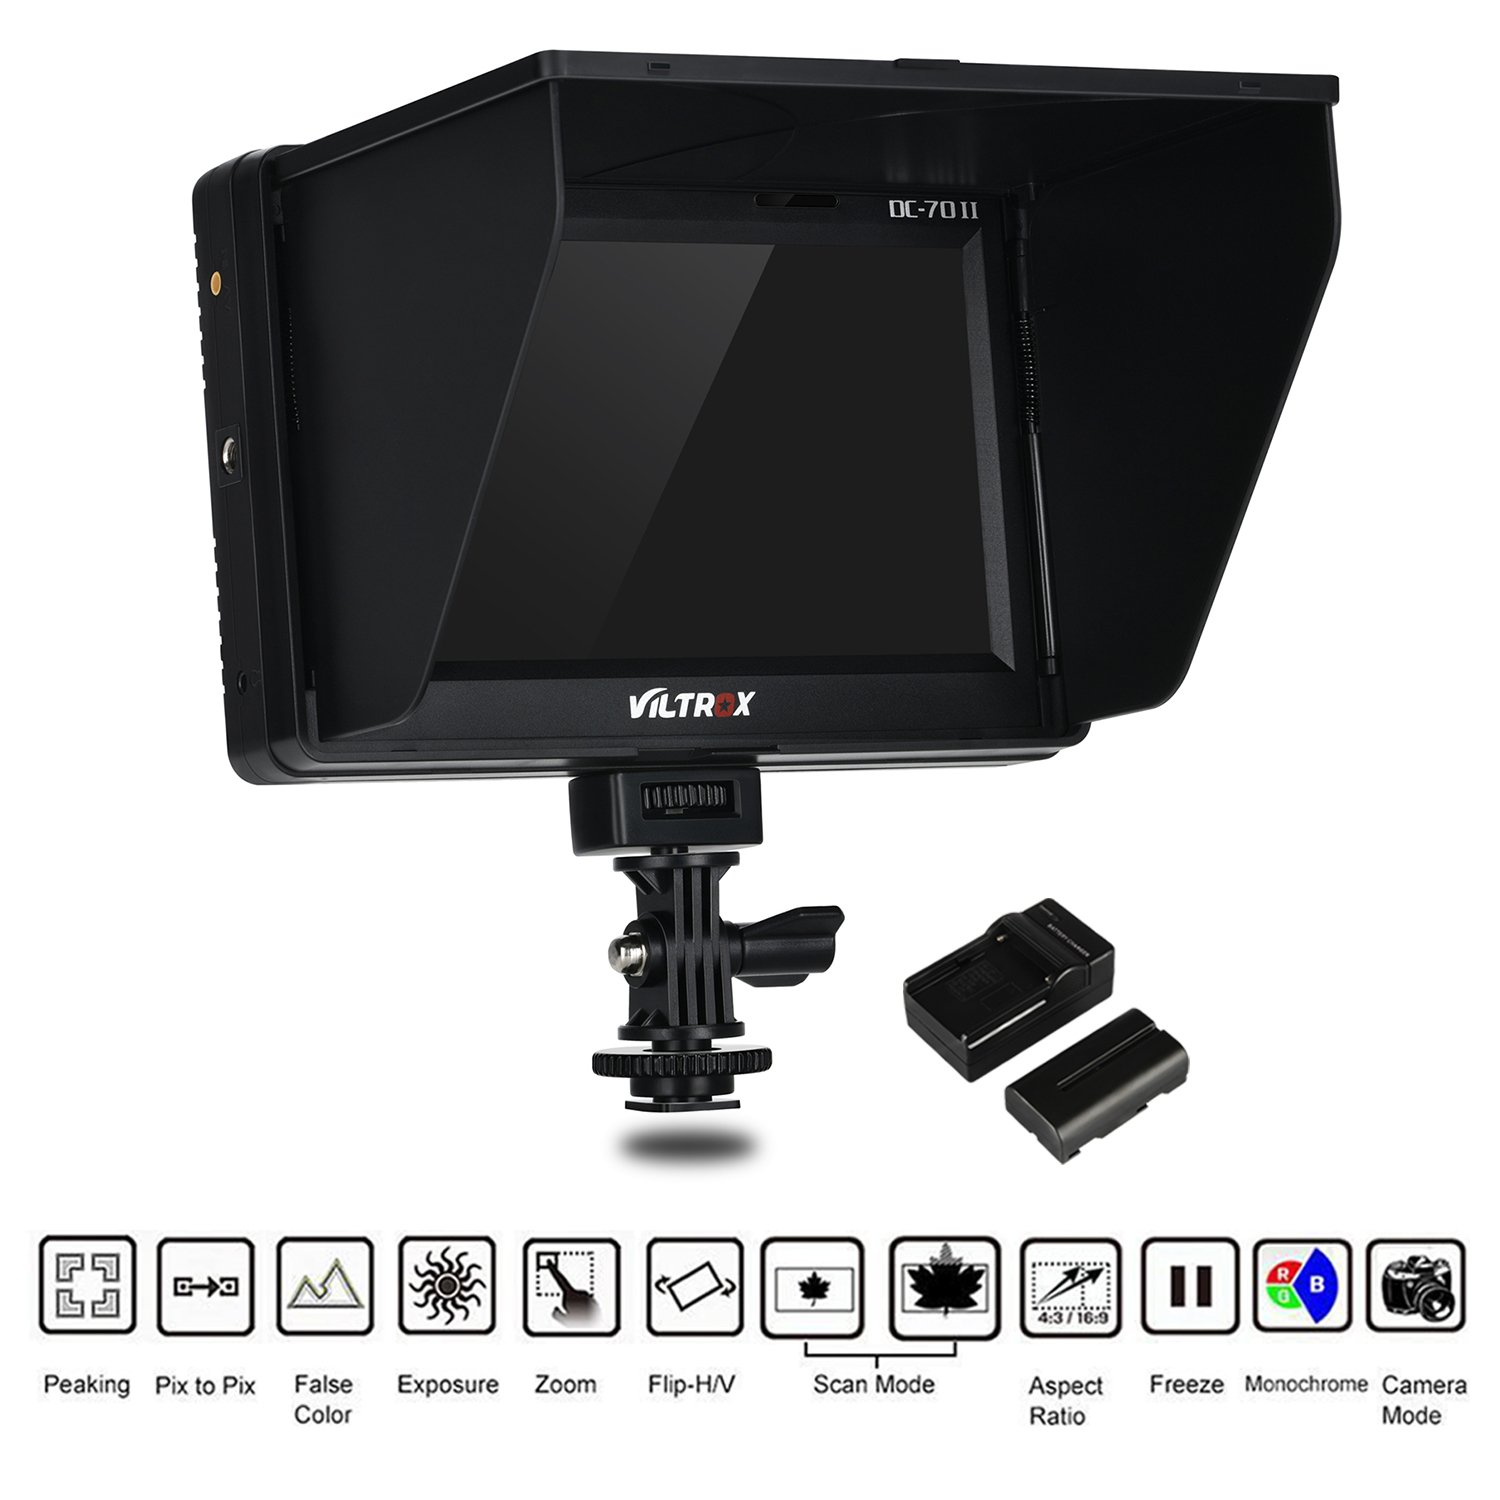 """VILTROX DC-70 II 4K HDMI Field Monitor 7"""" TFT LCD HD Video Monitor HDMI AV Input 1024 600 for DSLR Camera Canon Nikon + Rechargeable NP-F550 Battery + Charger"""